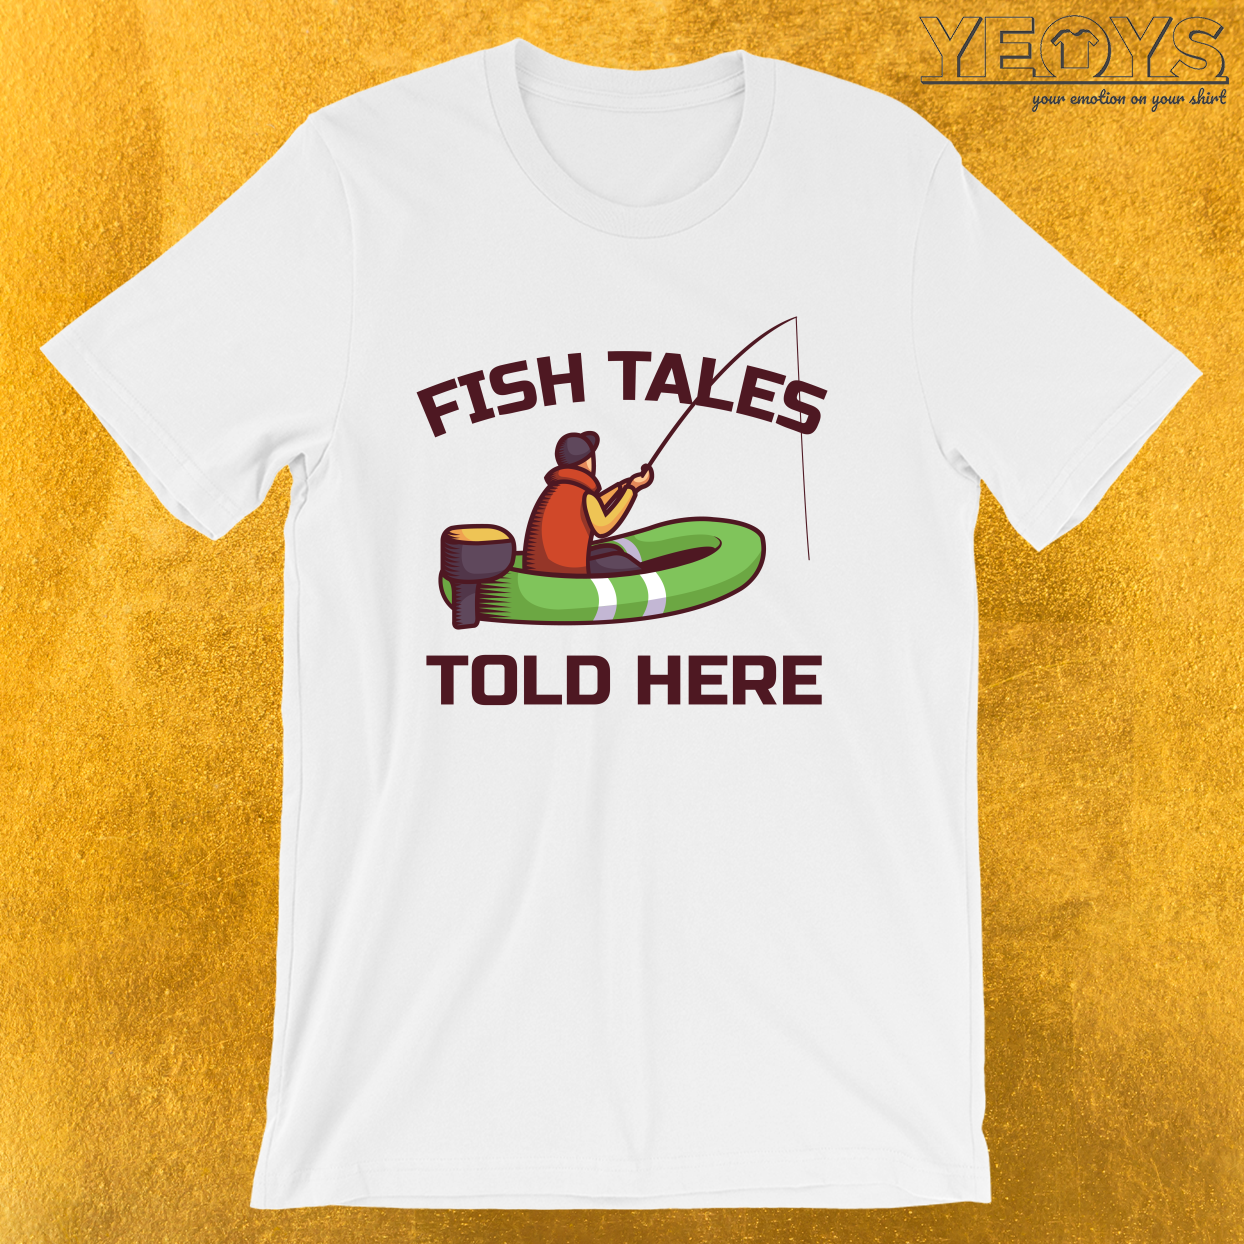 Fish Tales Told Here – Old Fisherman Tee